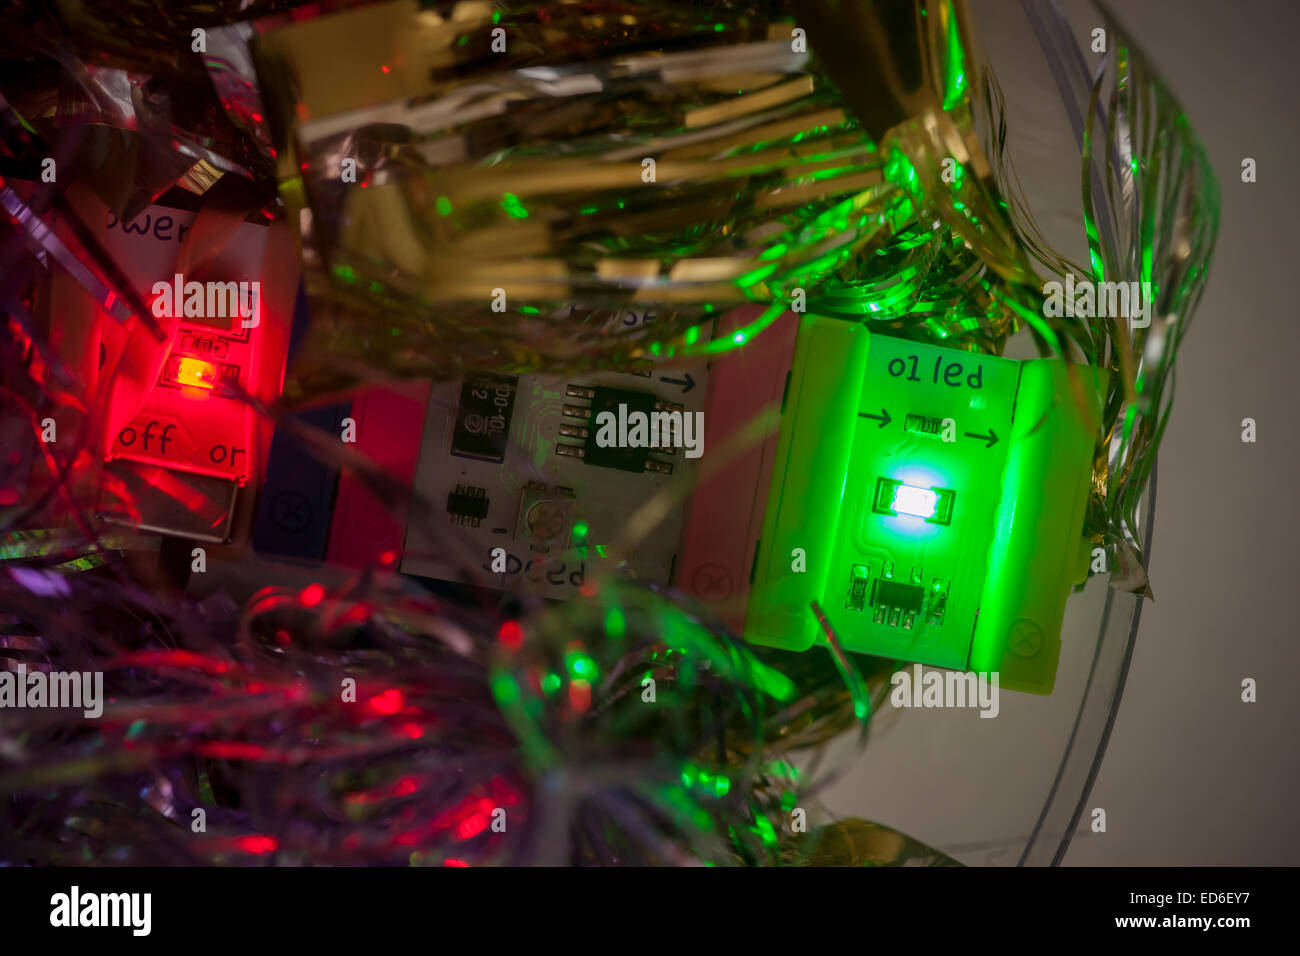 A LittleBits module flashing in a Christmas ornament in New York on Thursday, December 25, 2014. RadioShack joined - Stock Image